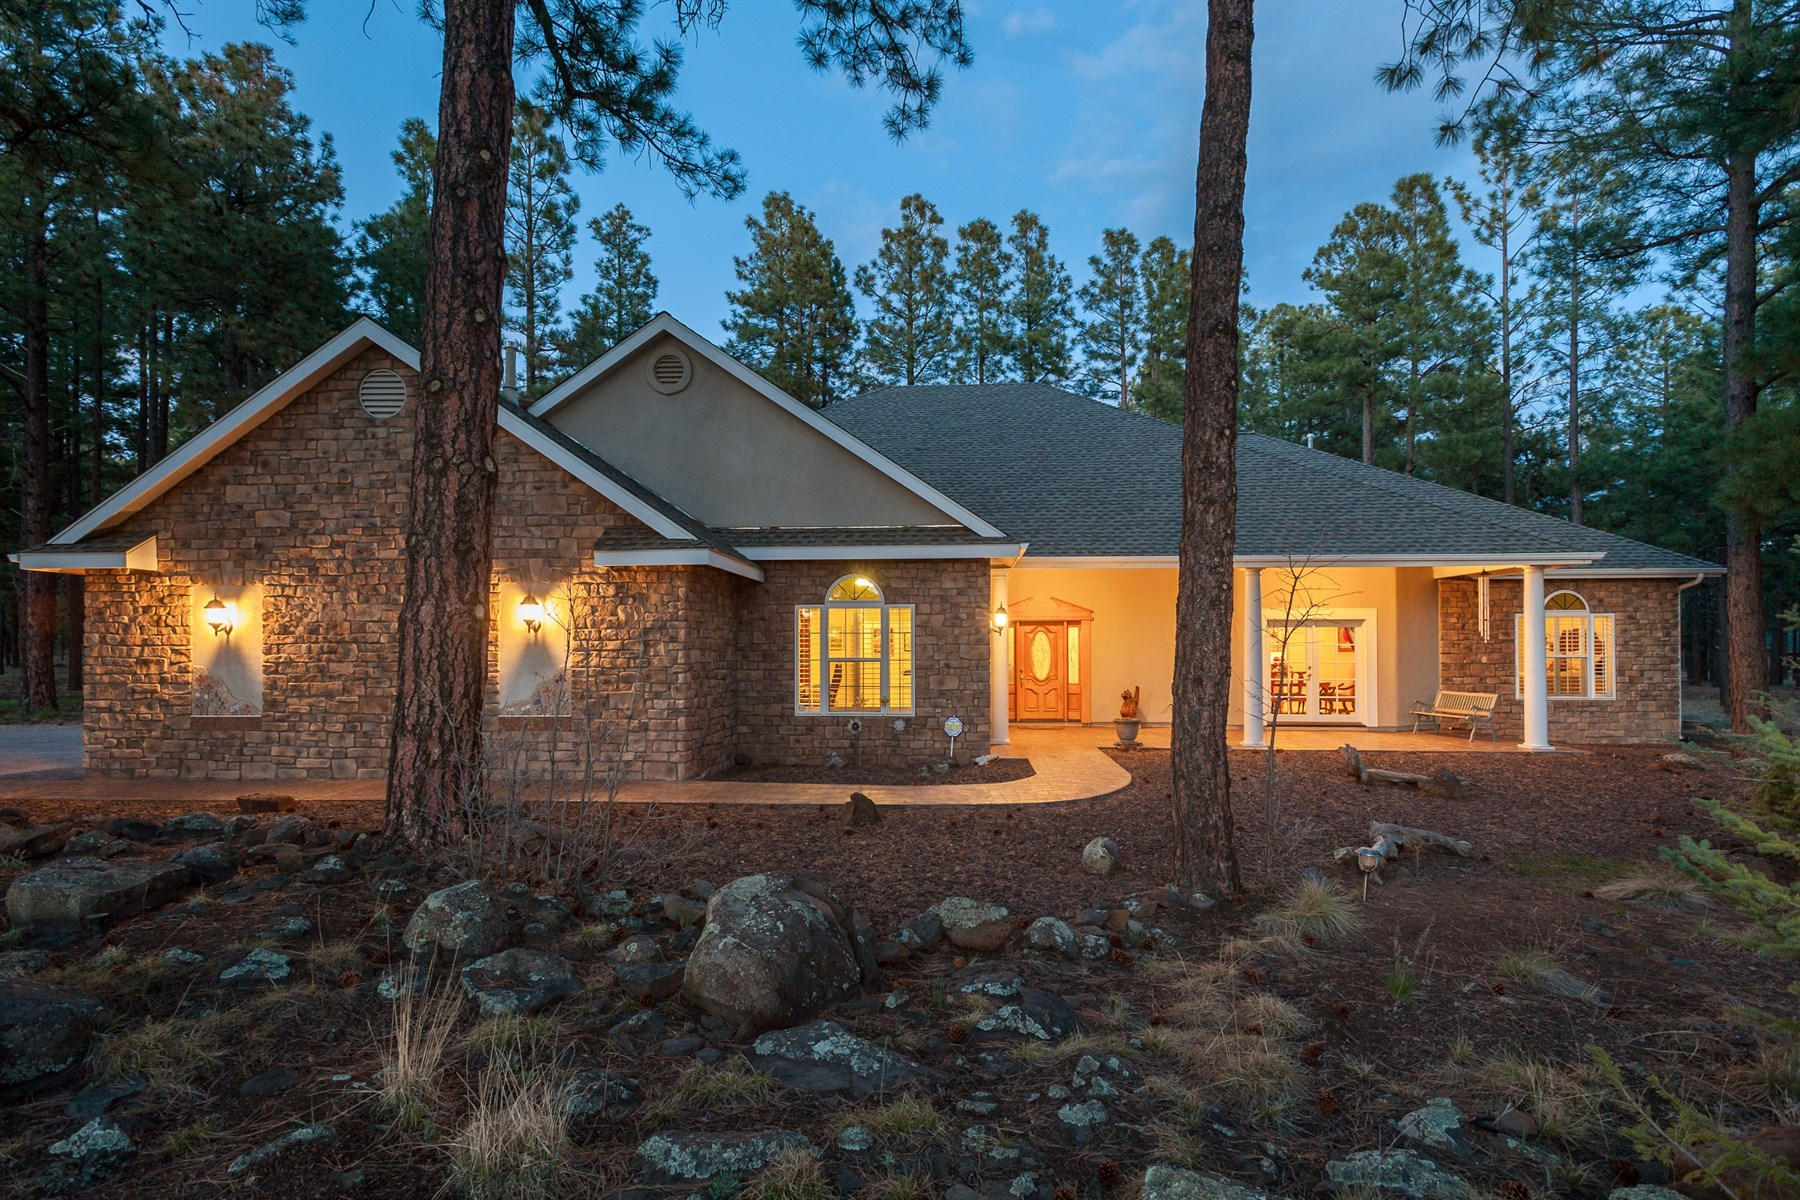 Maison unifamiliale pour l Vente à Gorgeous Single Level Home 3620 N Langdale TRL Flagstaff, Arizona, 86001 États-Unis